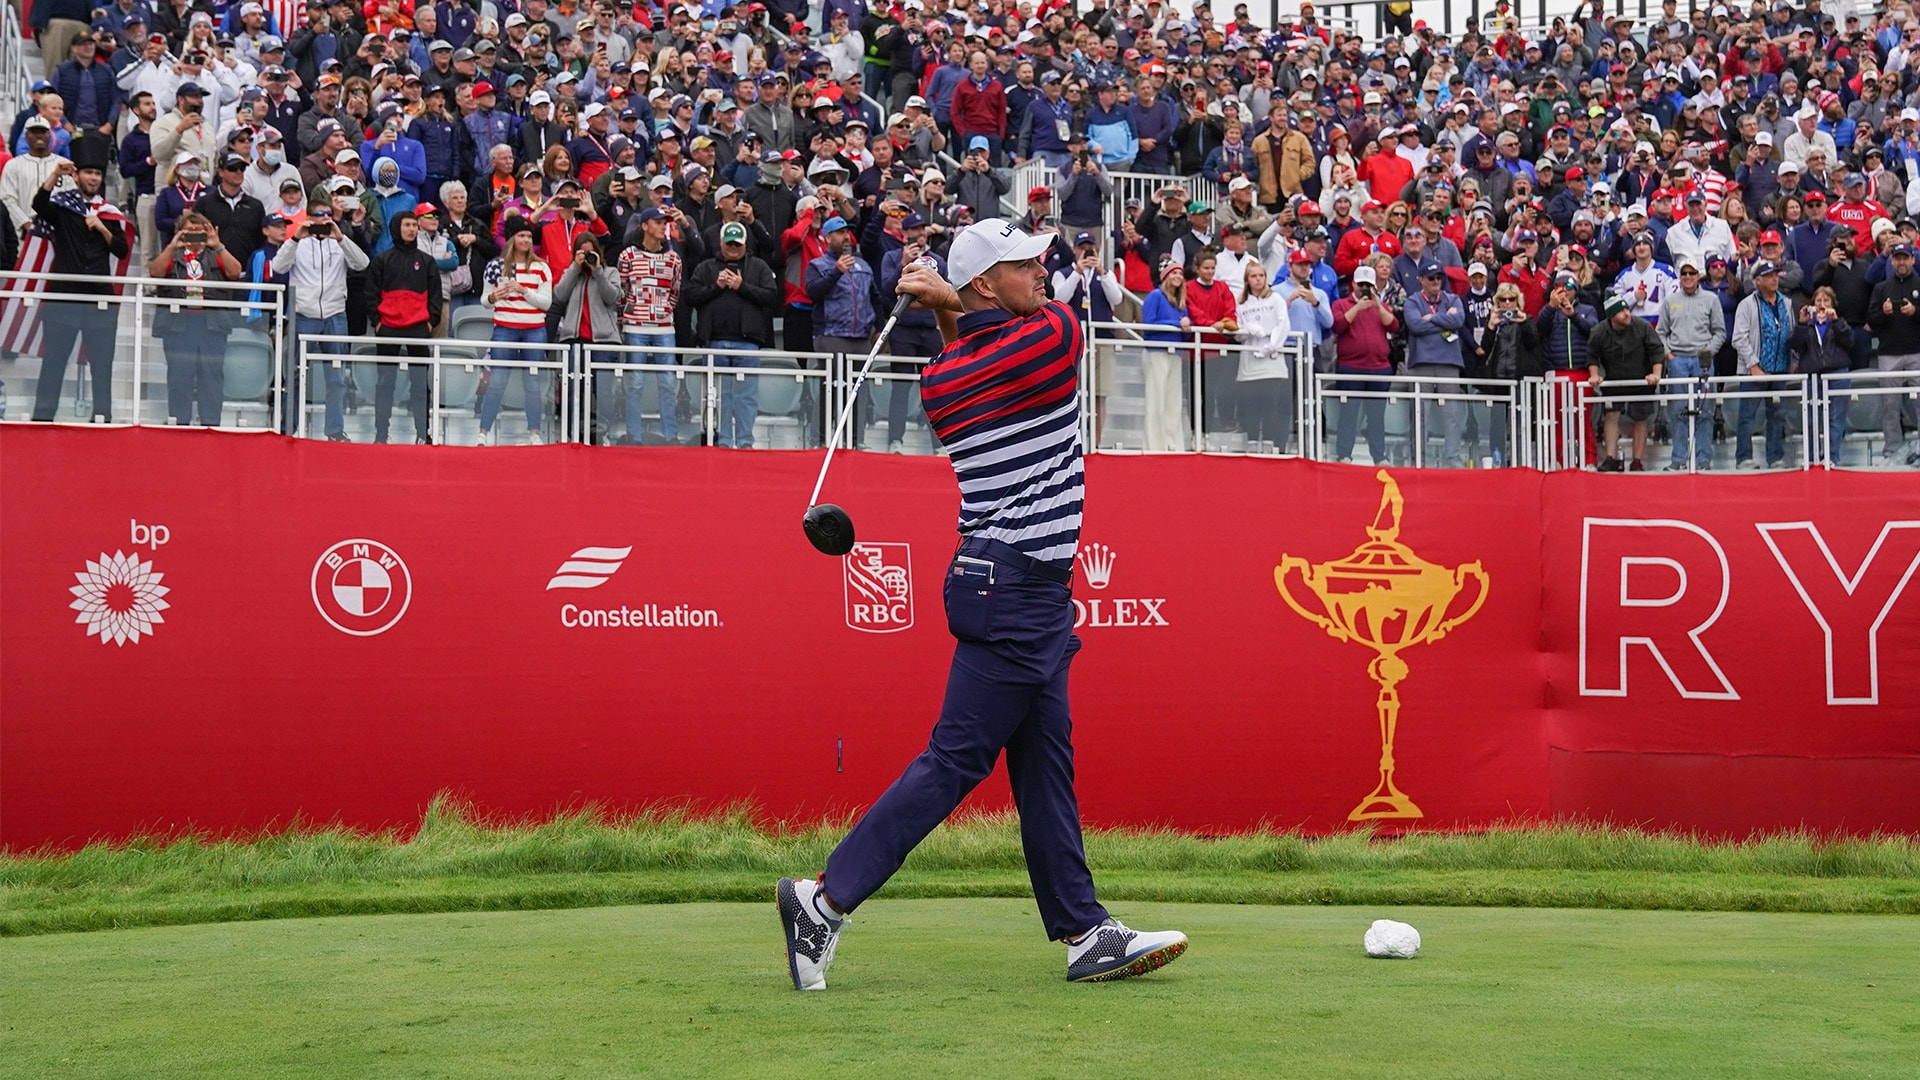 2020 Ryder Cup: Bryson DeChambeau calls opening tee shot like Babe Ruth, almost drives it on green